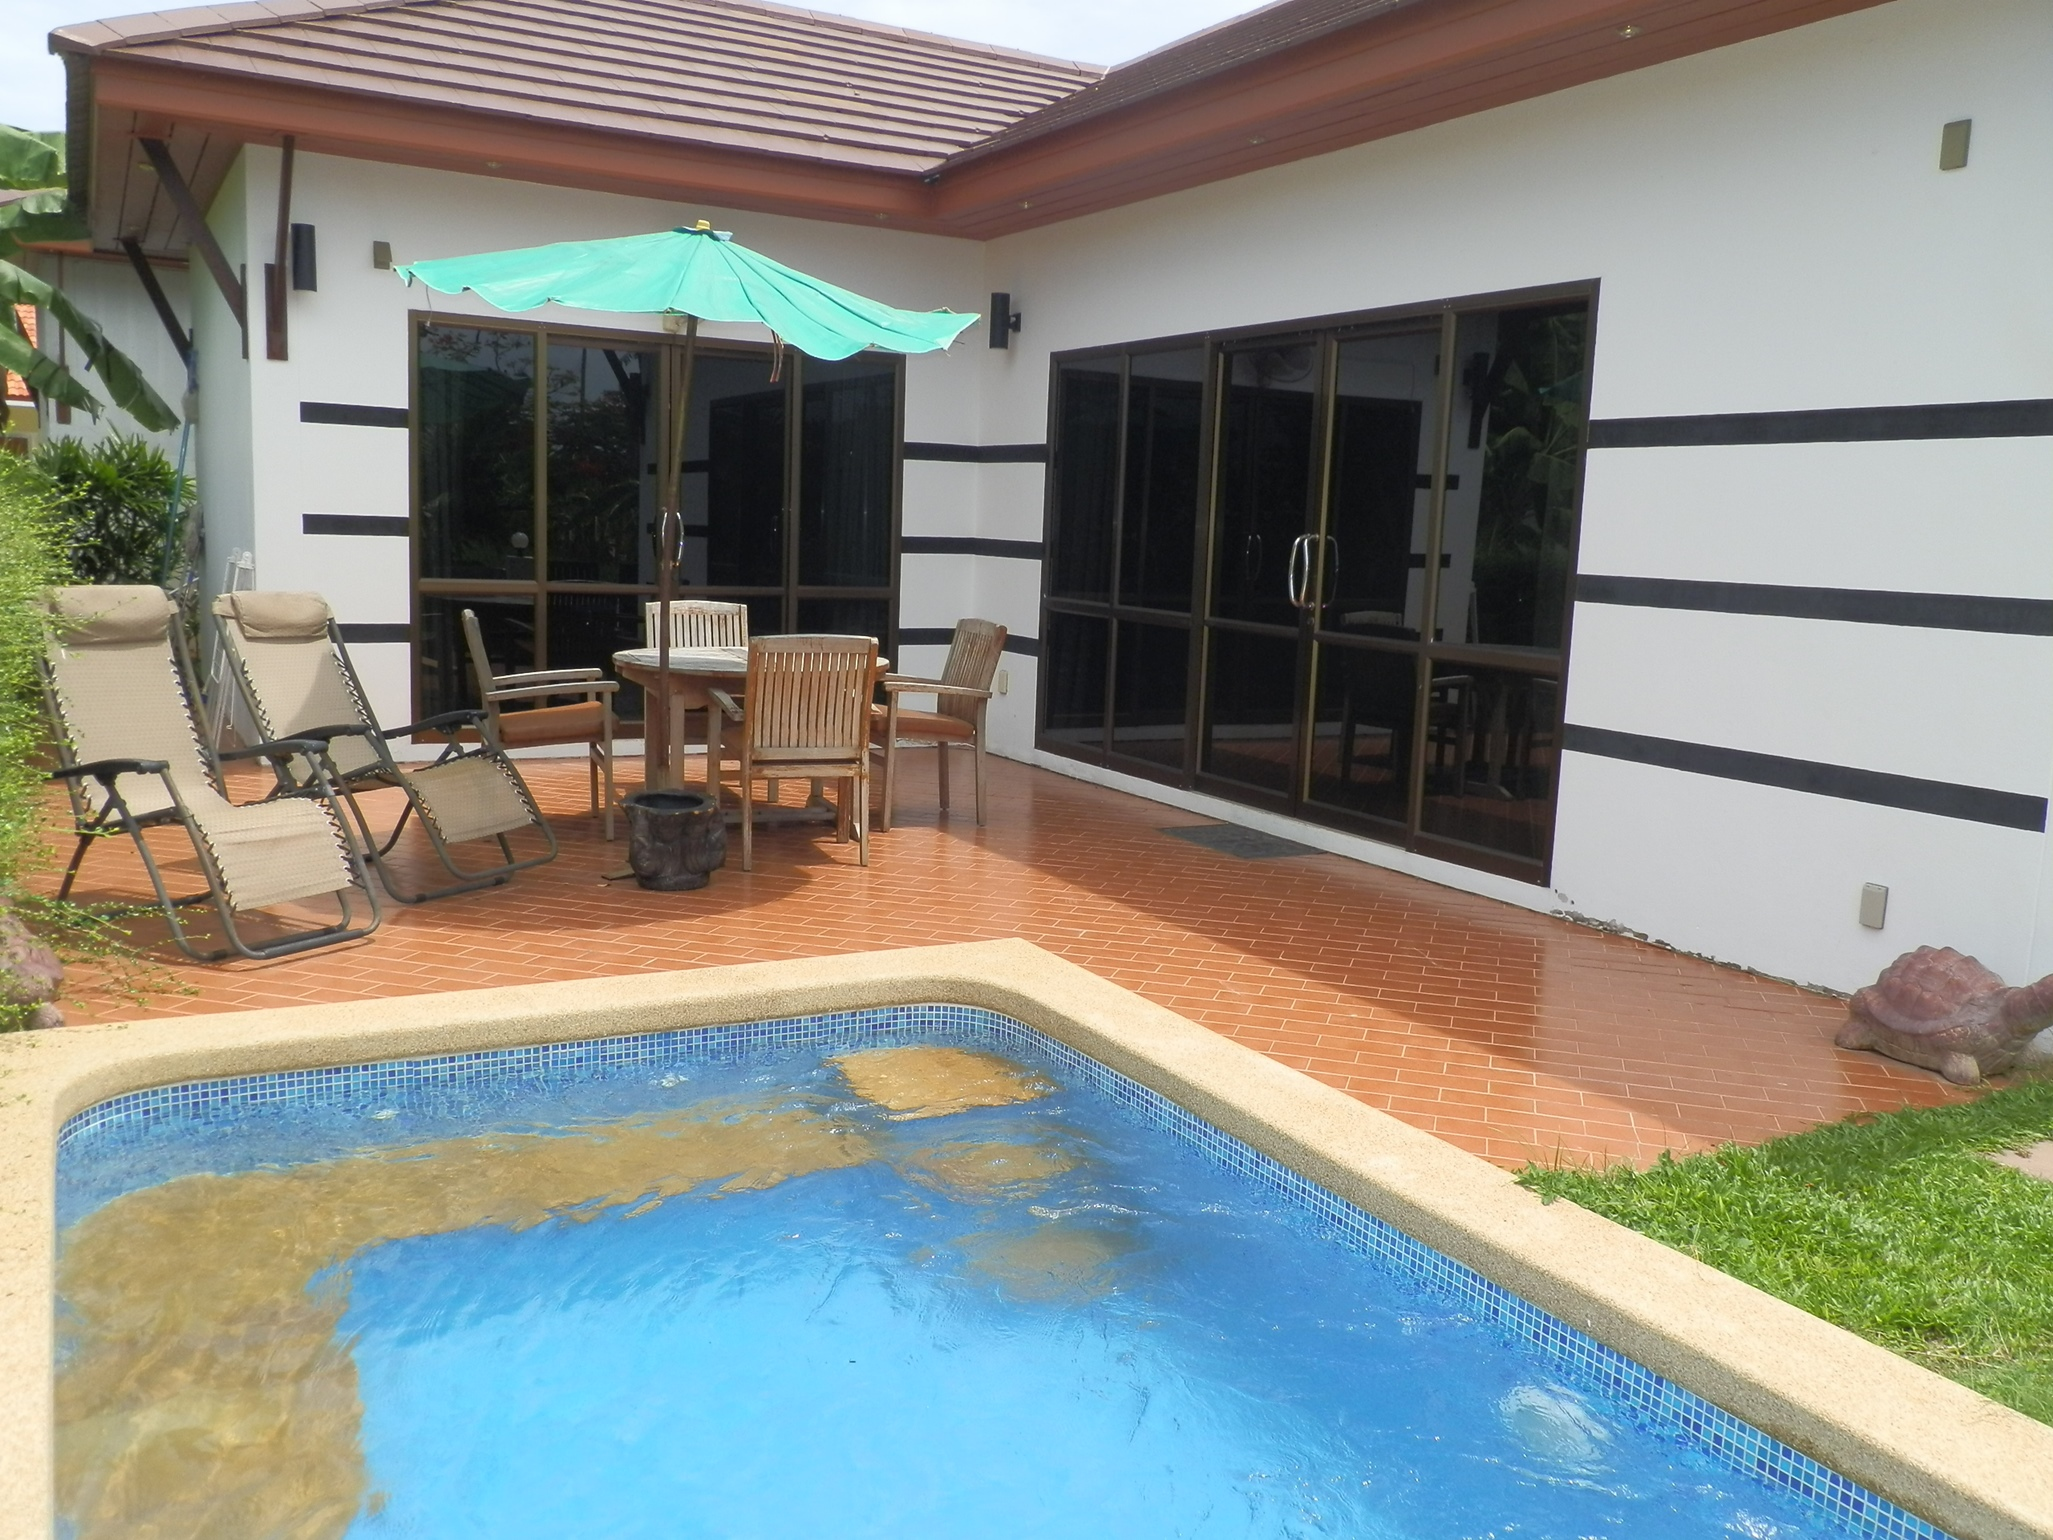 EasyRent in Rayong, Thailand - Long term rental